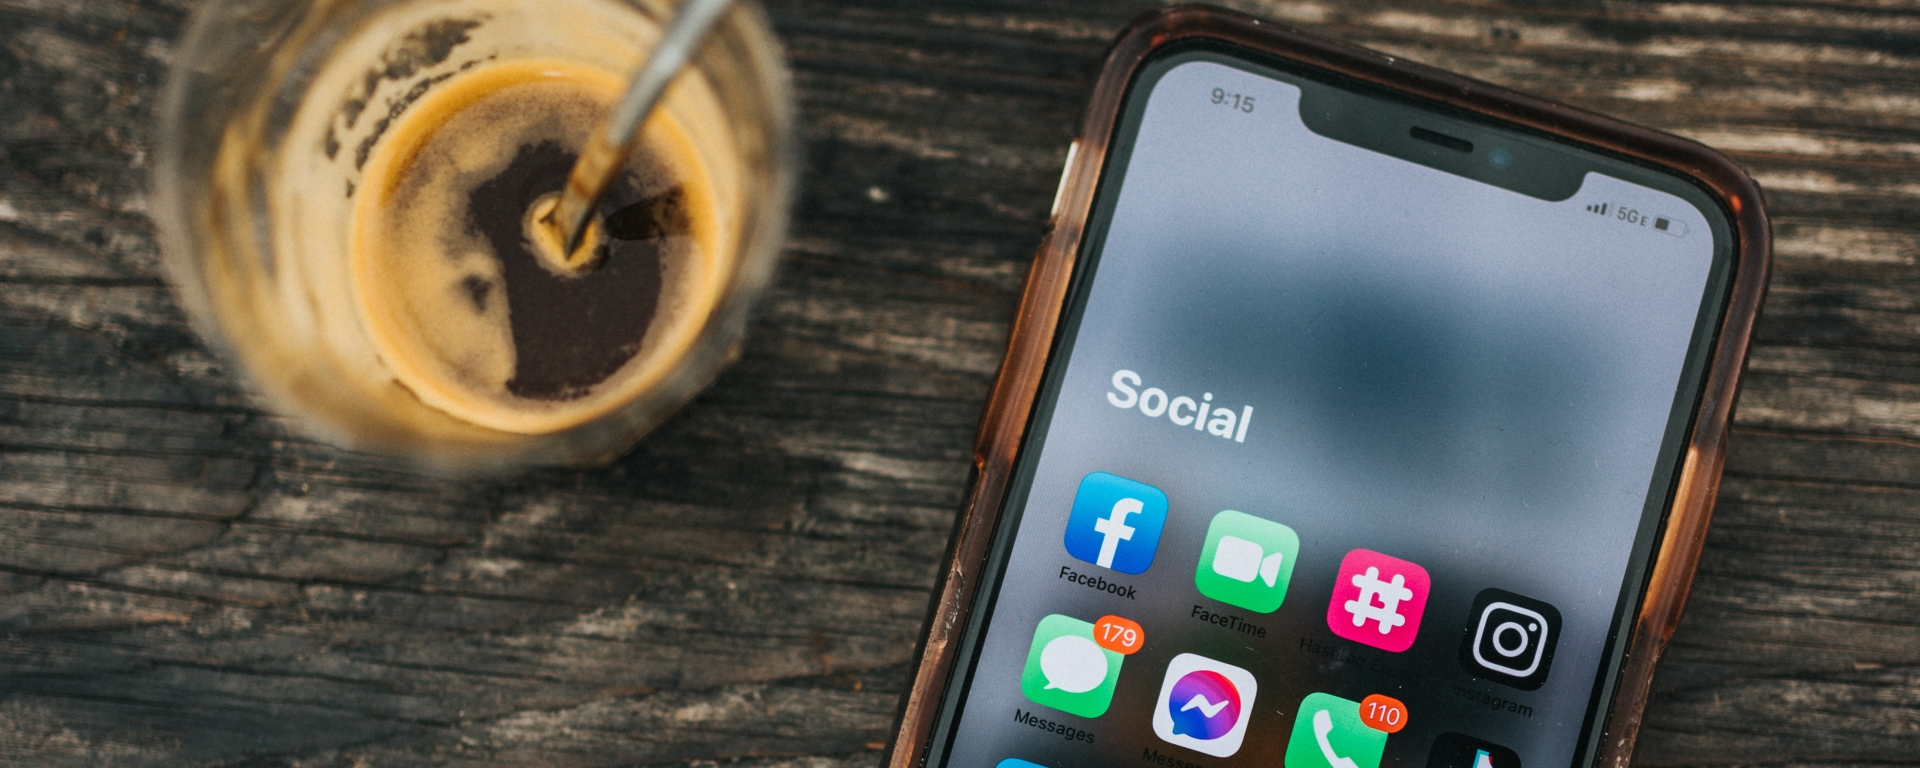 An image of an espresso shot and a phone with a set of social media app icons.